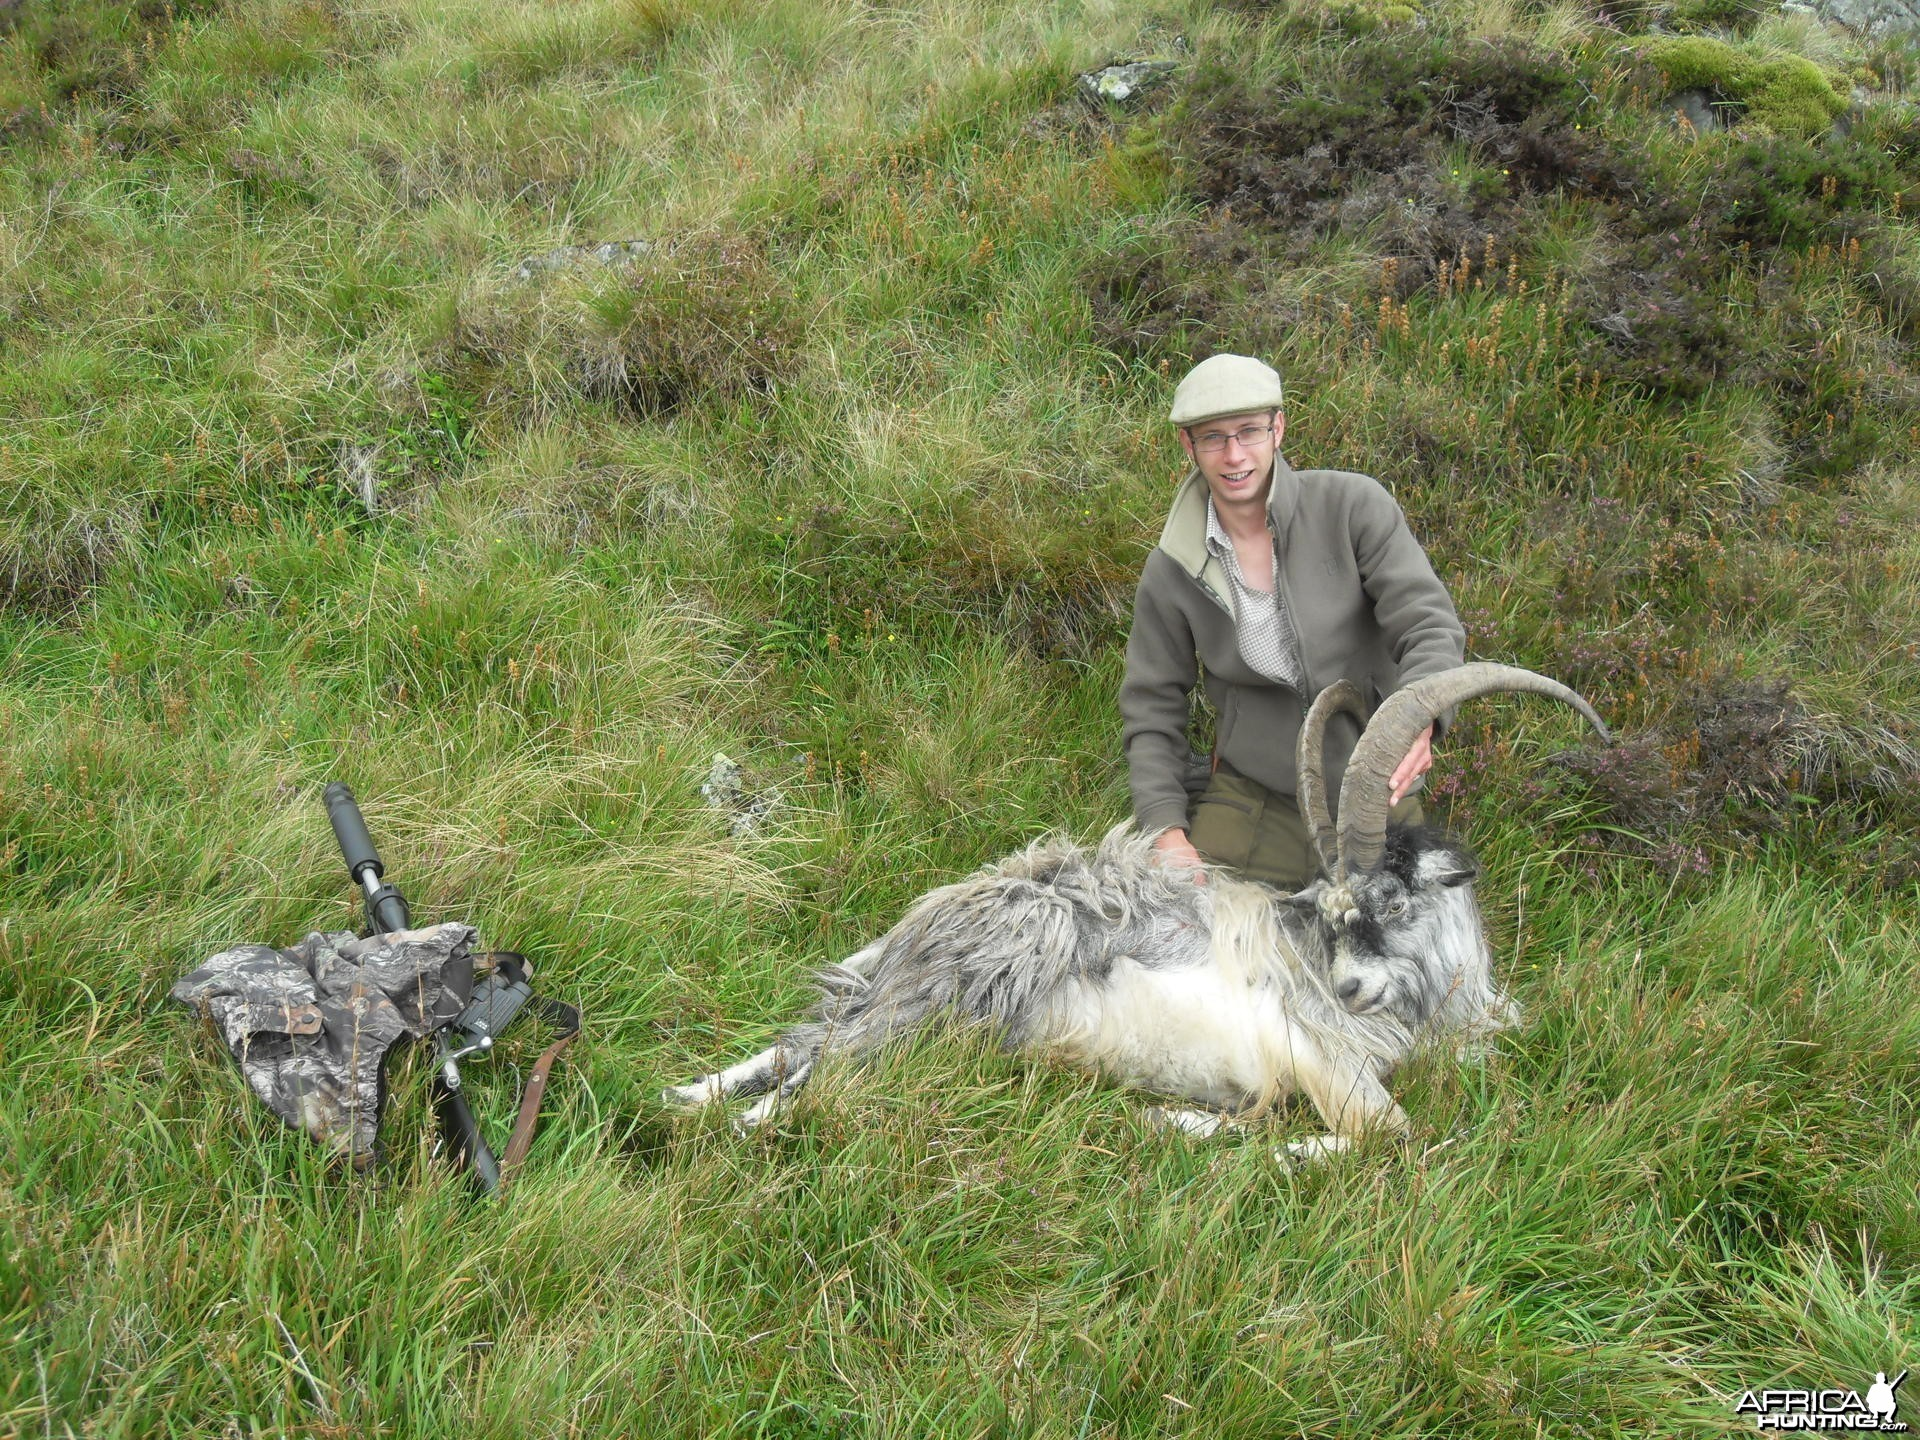 Hunting Scottish Goats in the Scottish Mountains